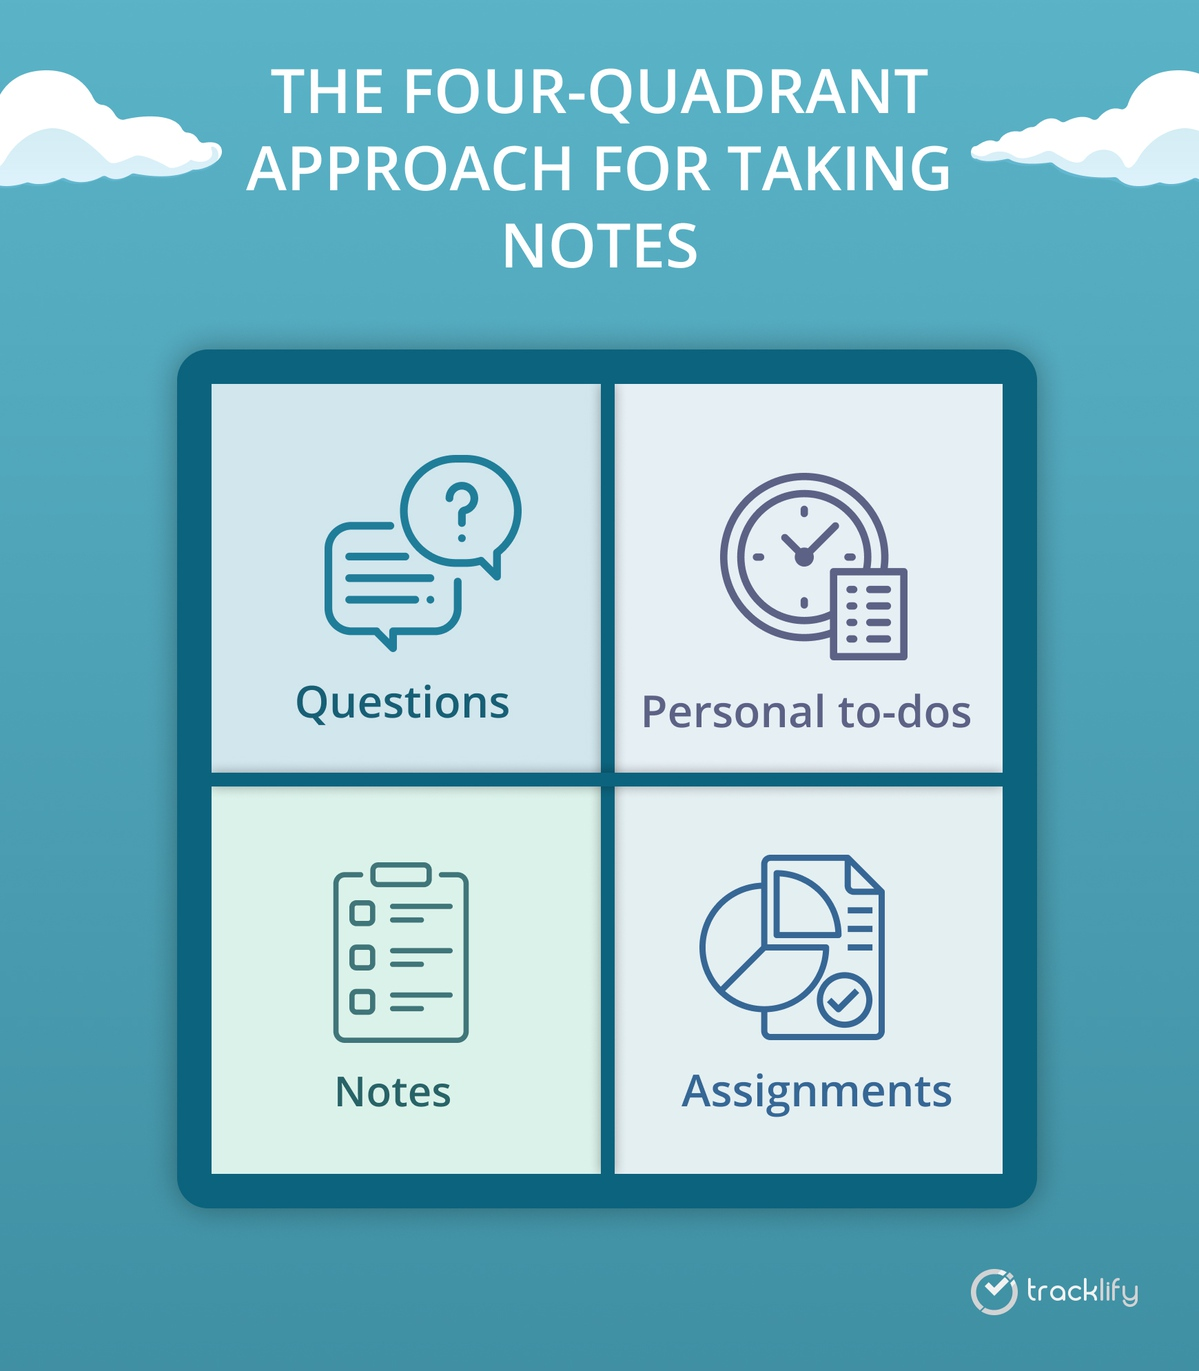 The four-quadrant approach for taking notes